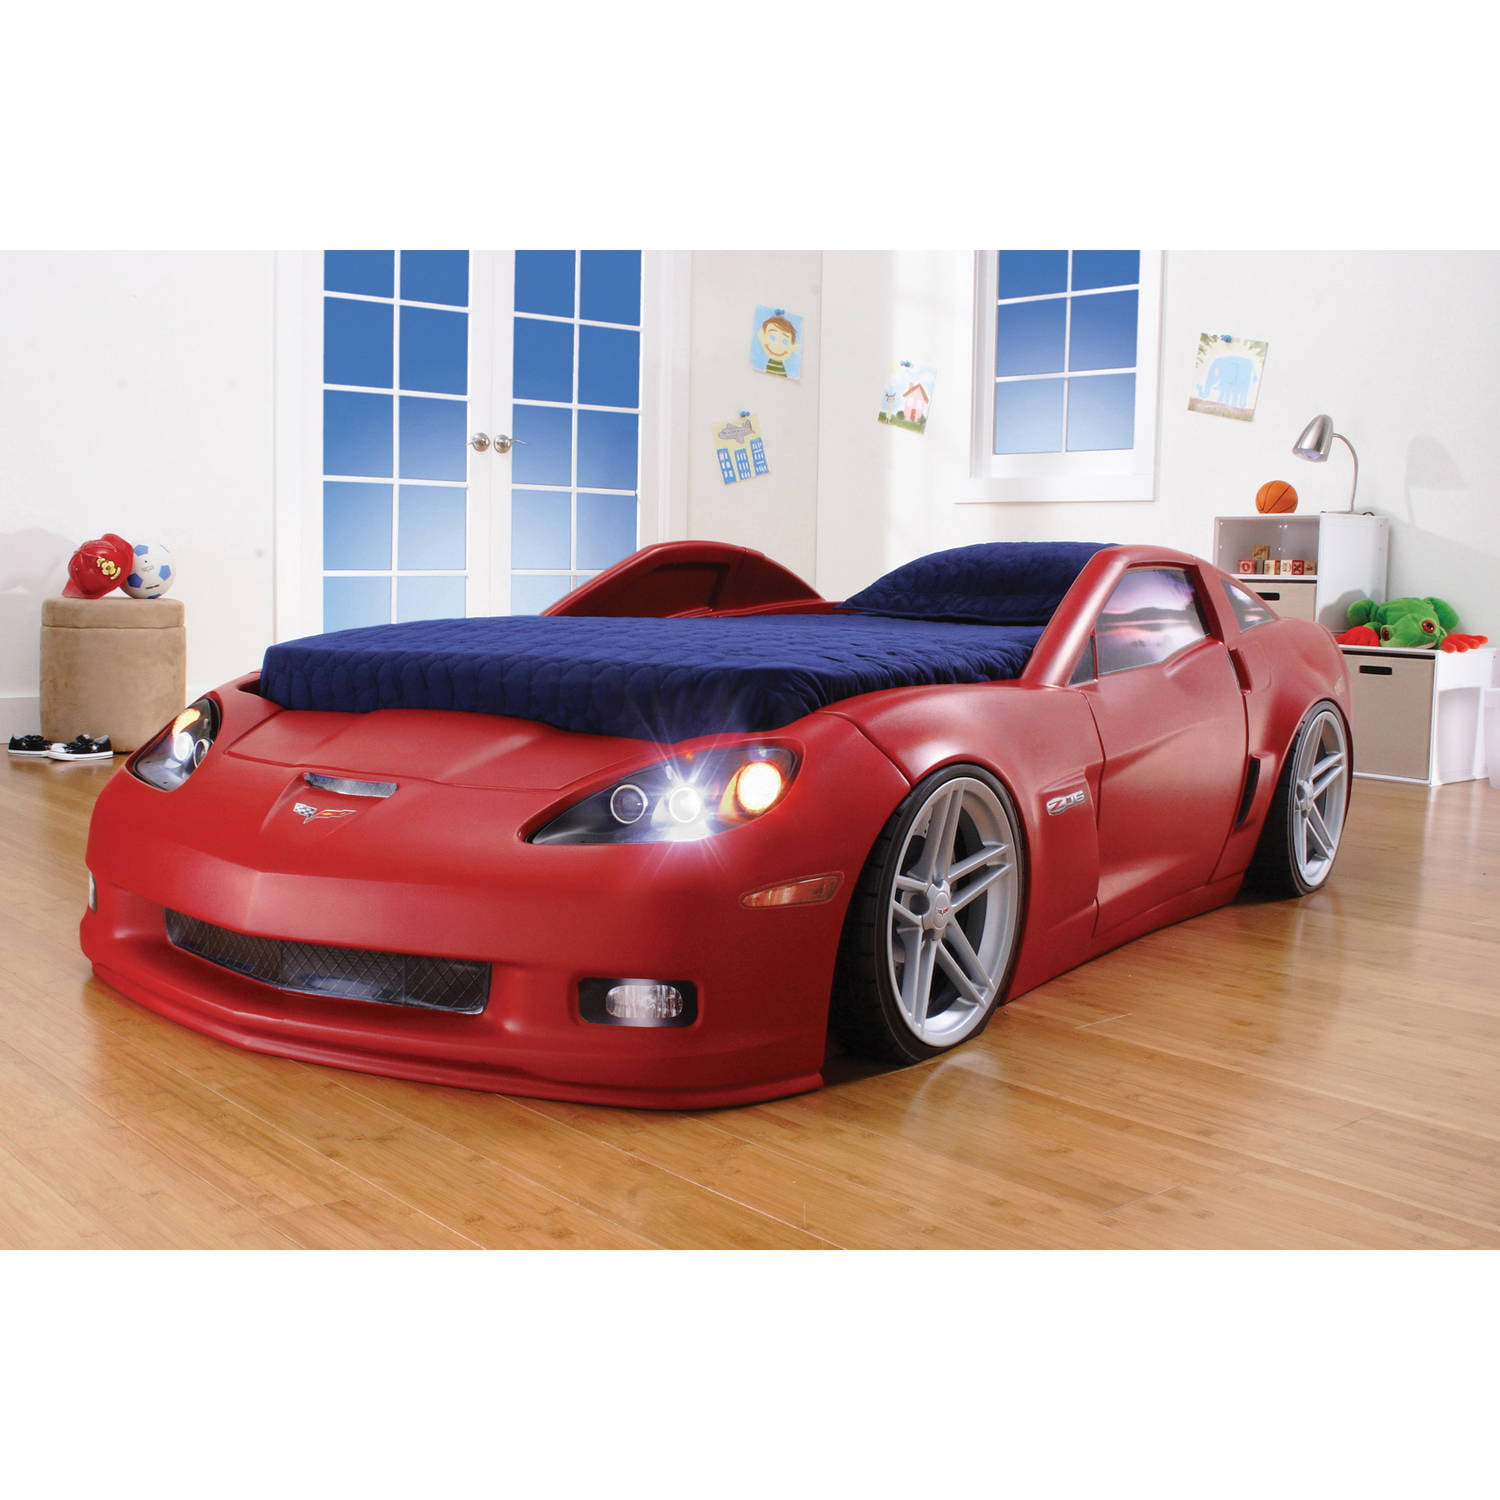 Car beds for boys twin - Step2 Corvette Convertible Toddler To Twin Bed With Lights Your Choice In Color Walmart Com